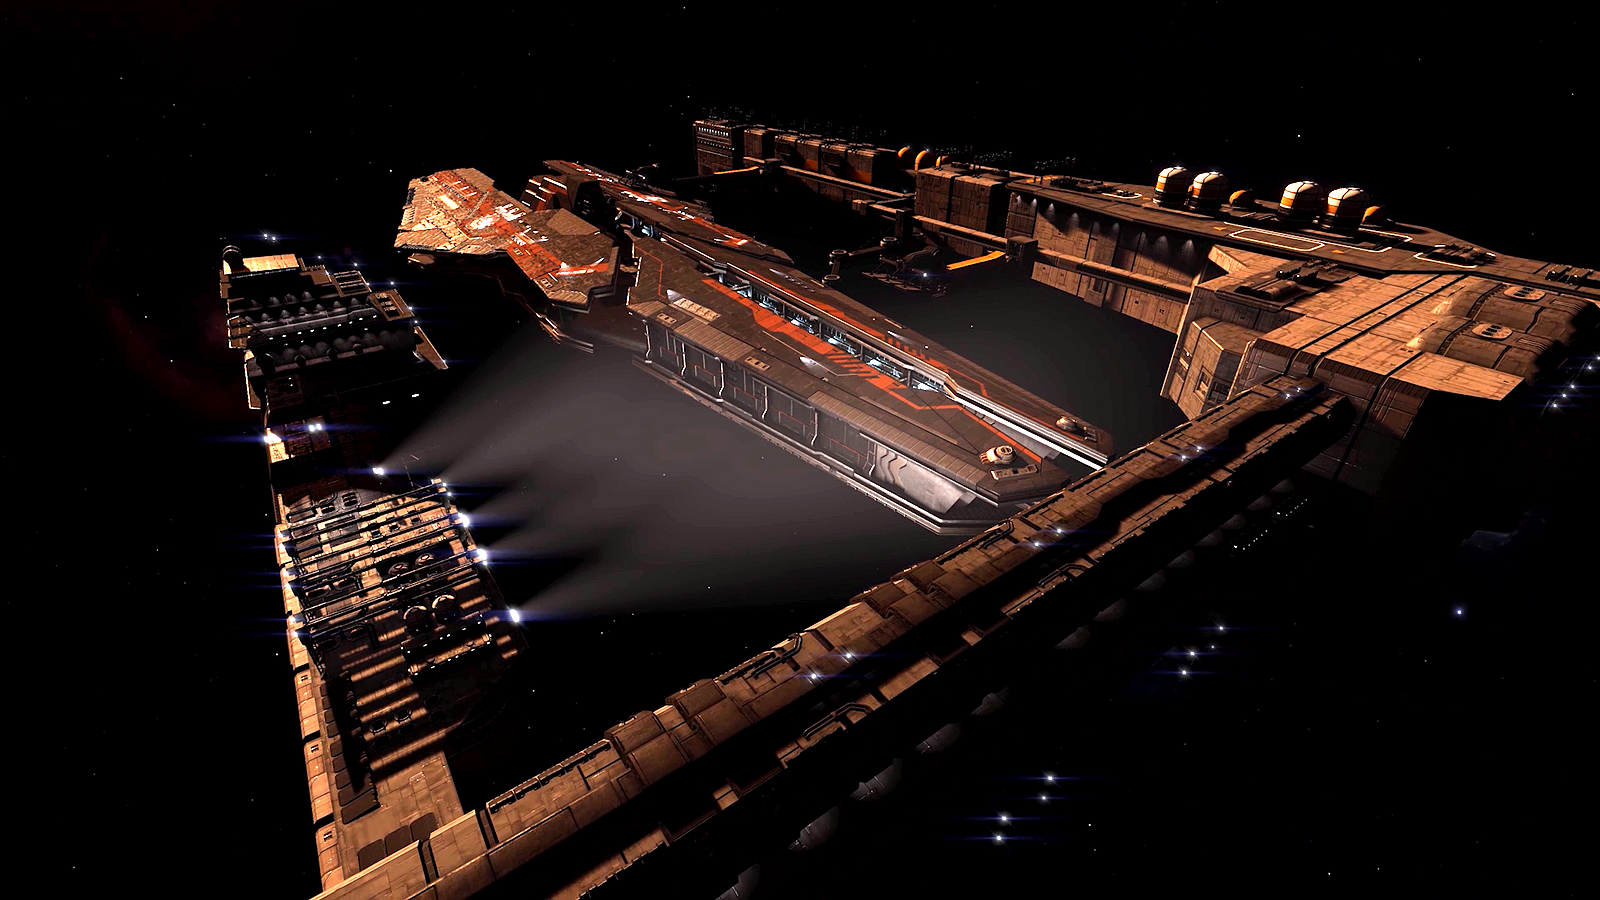 Capital ship space dock